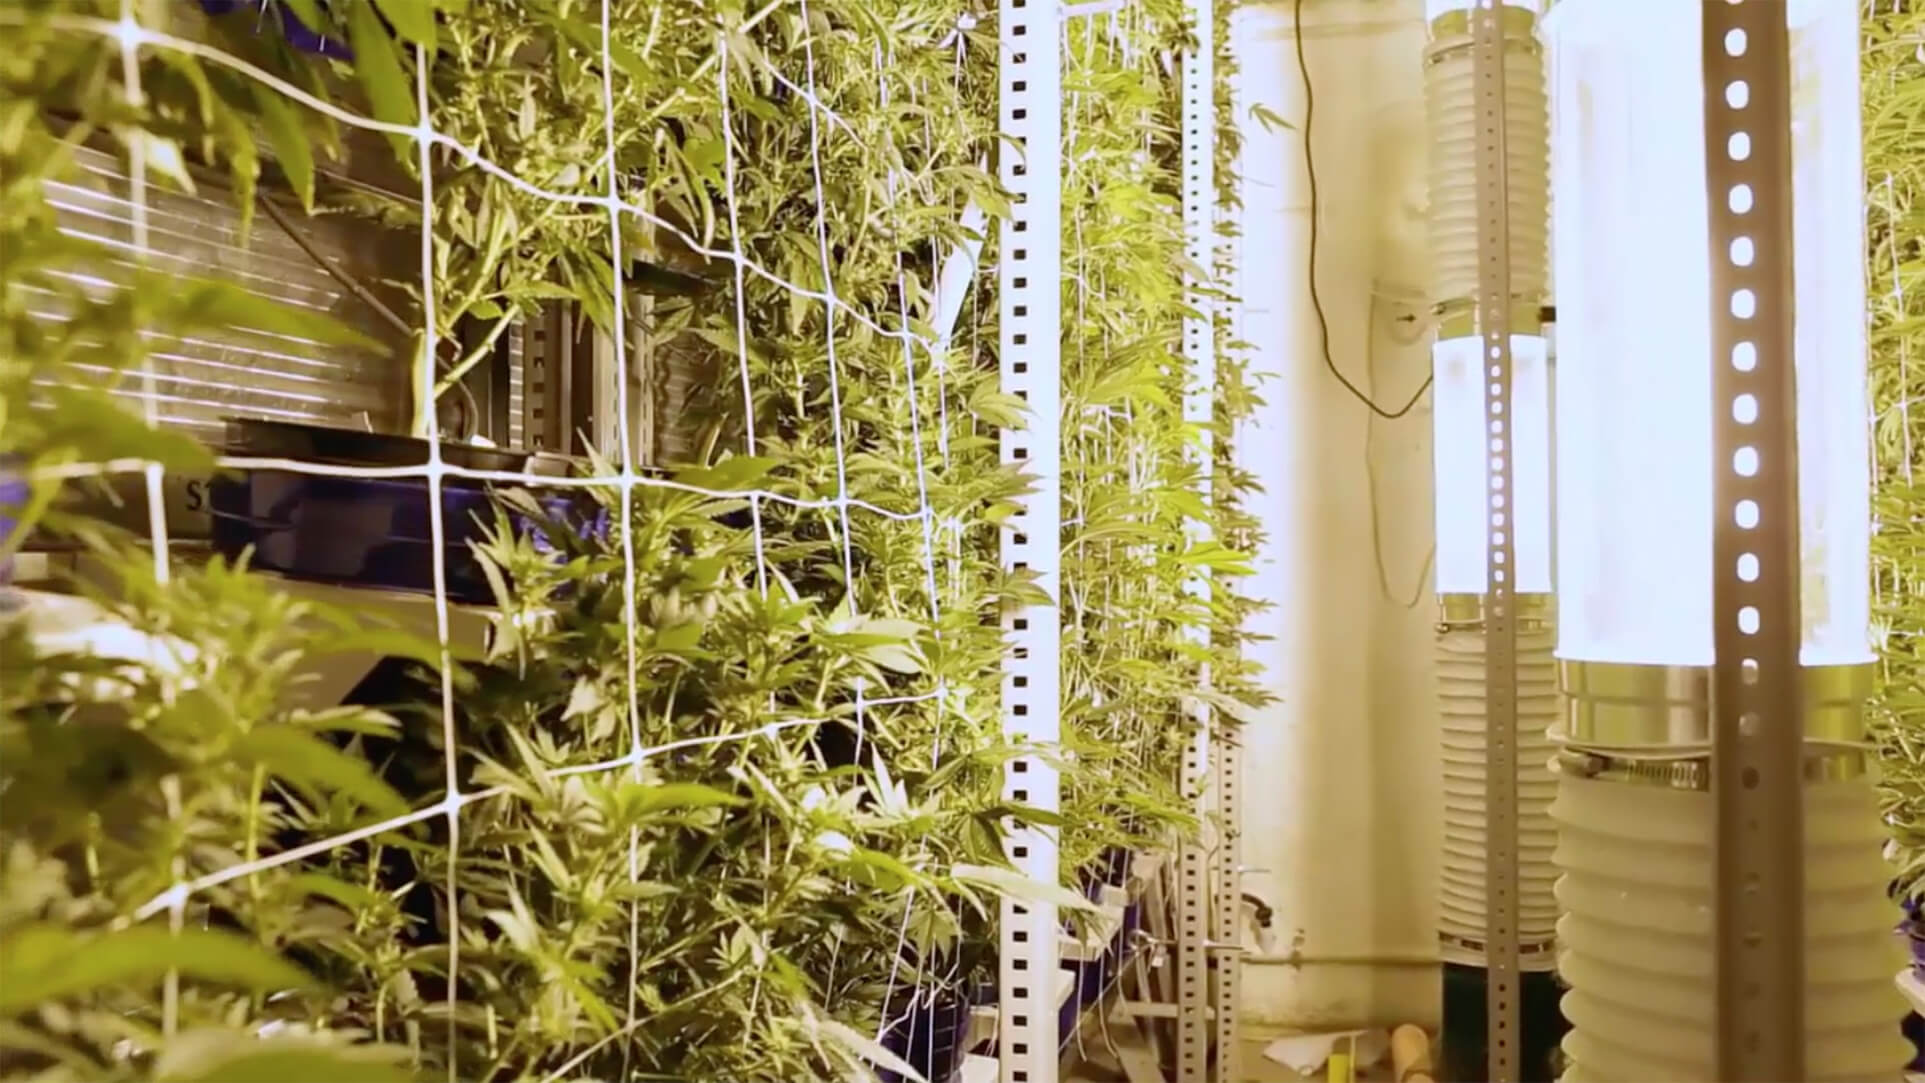 Vertical growing of cannabis on mobile racking with grow lights for uniform access at Colorado Cannabis Operation